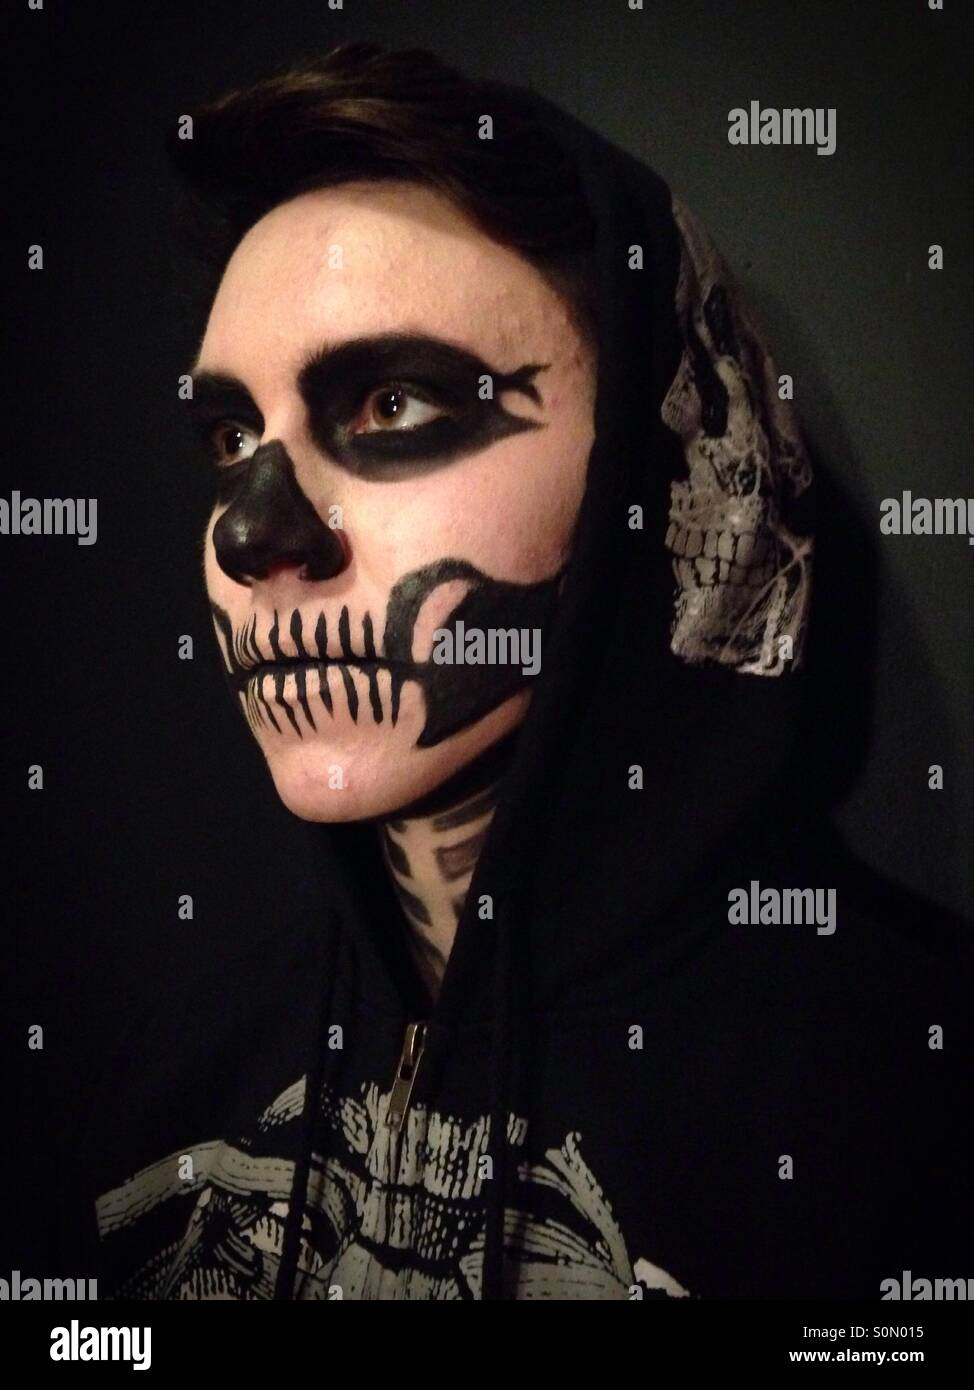 Eine Person trägt Skelett Make-up. Stockbild